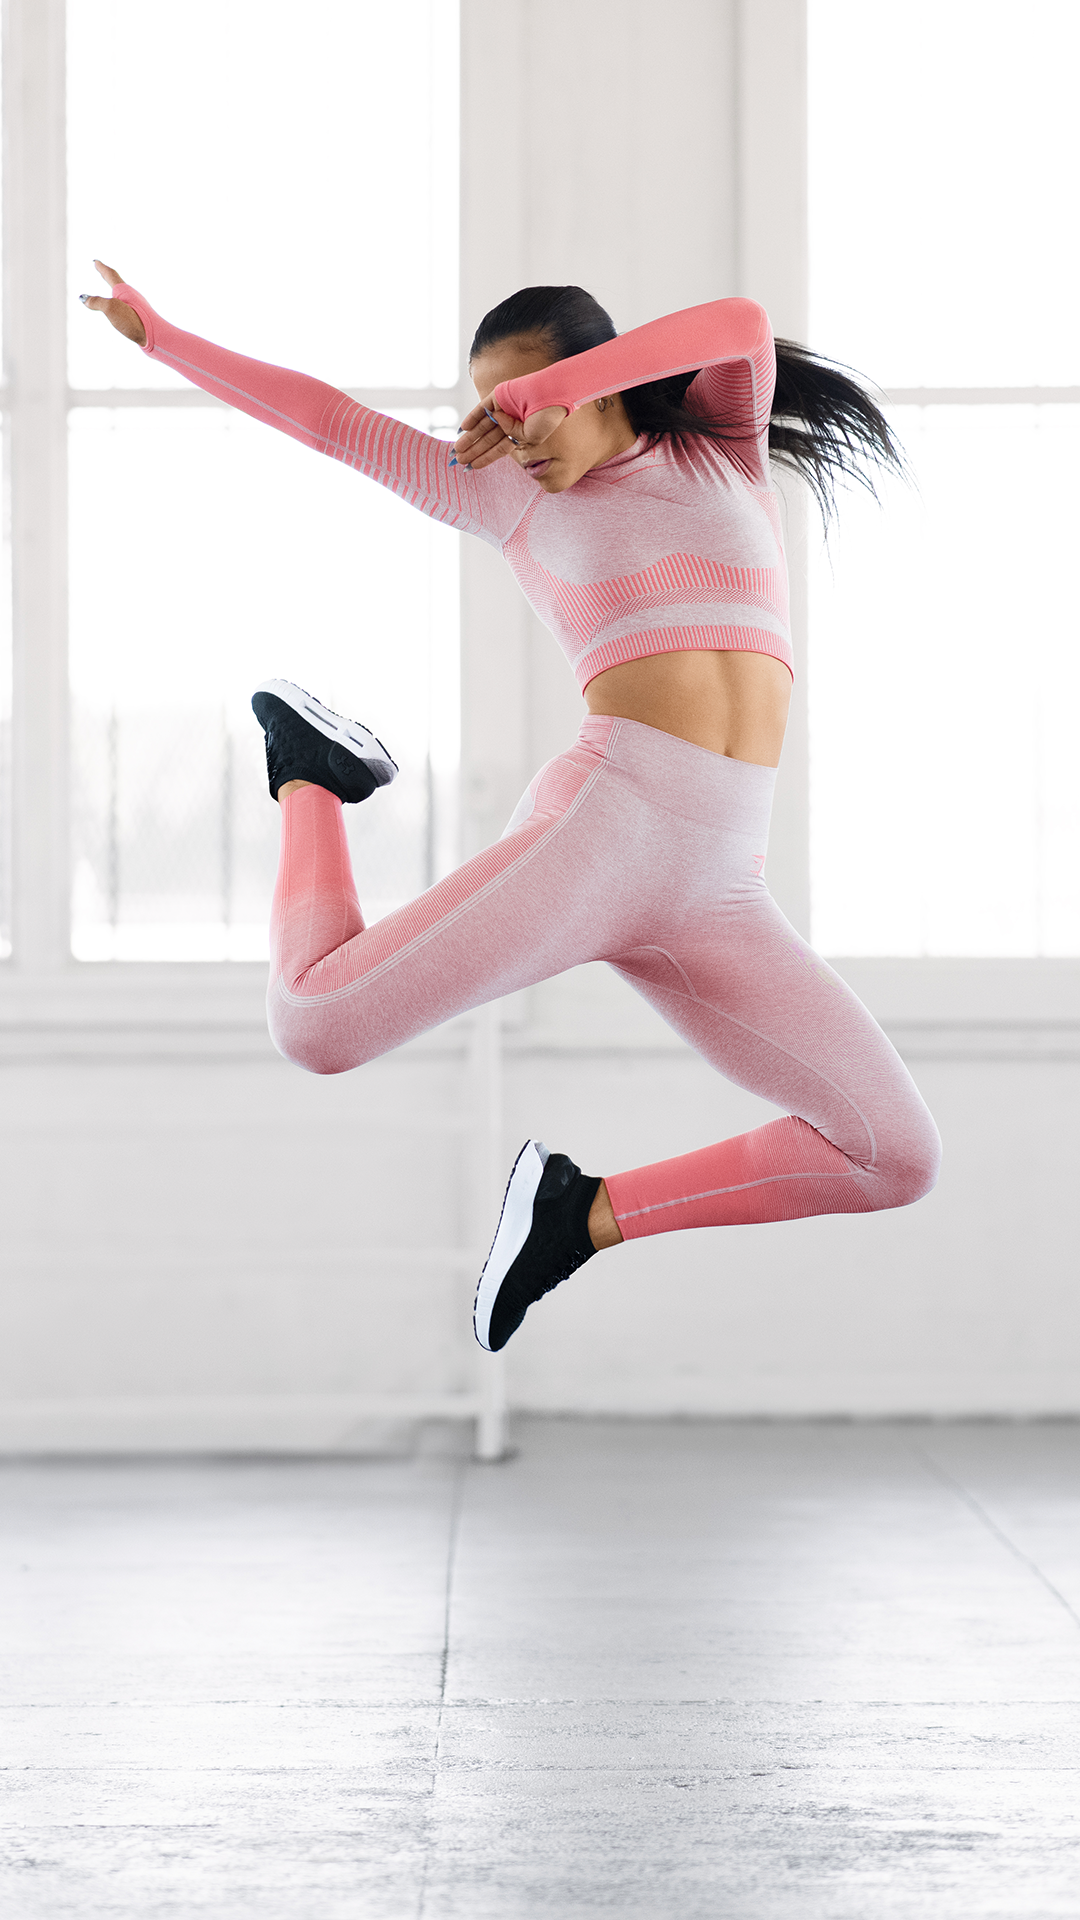 dbd3cd3361e3b Turn it up louder in the Amplify Seamless collection. #Gymshark #Leggings  #HighWaisted #Peach #Coral #Taupe #Dance #Jump #Amplify